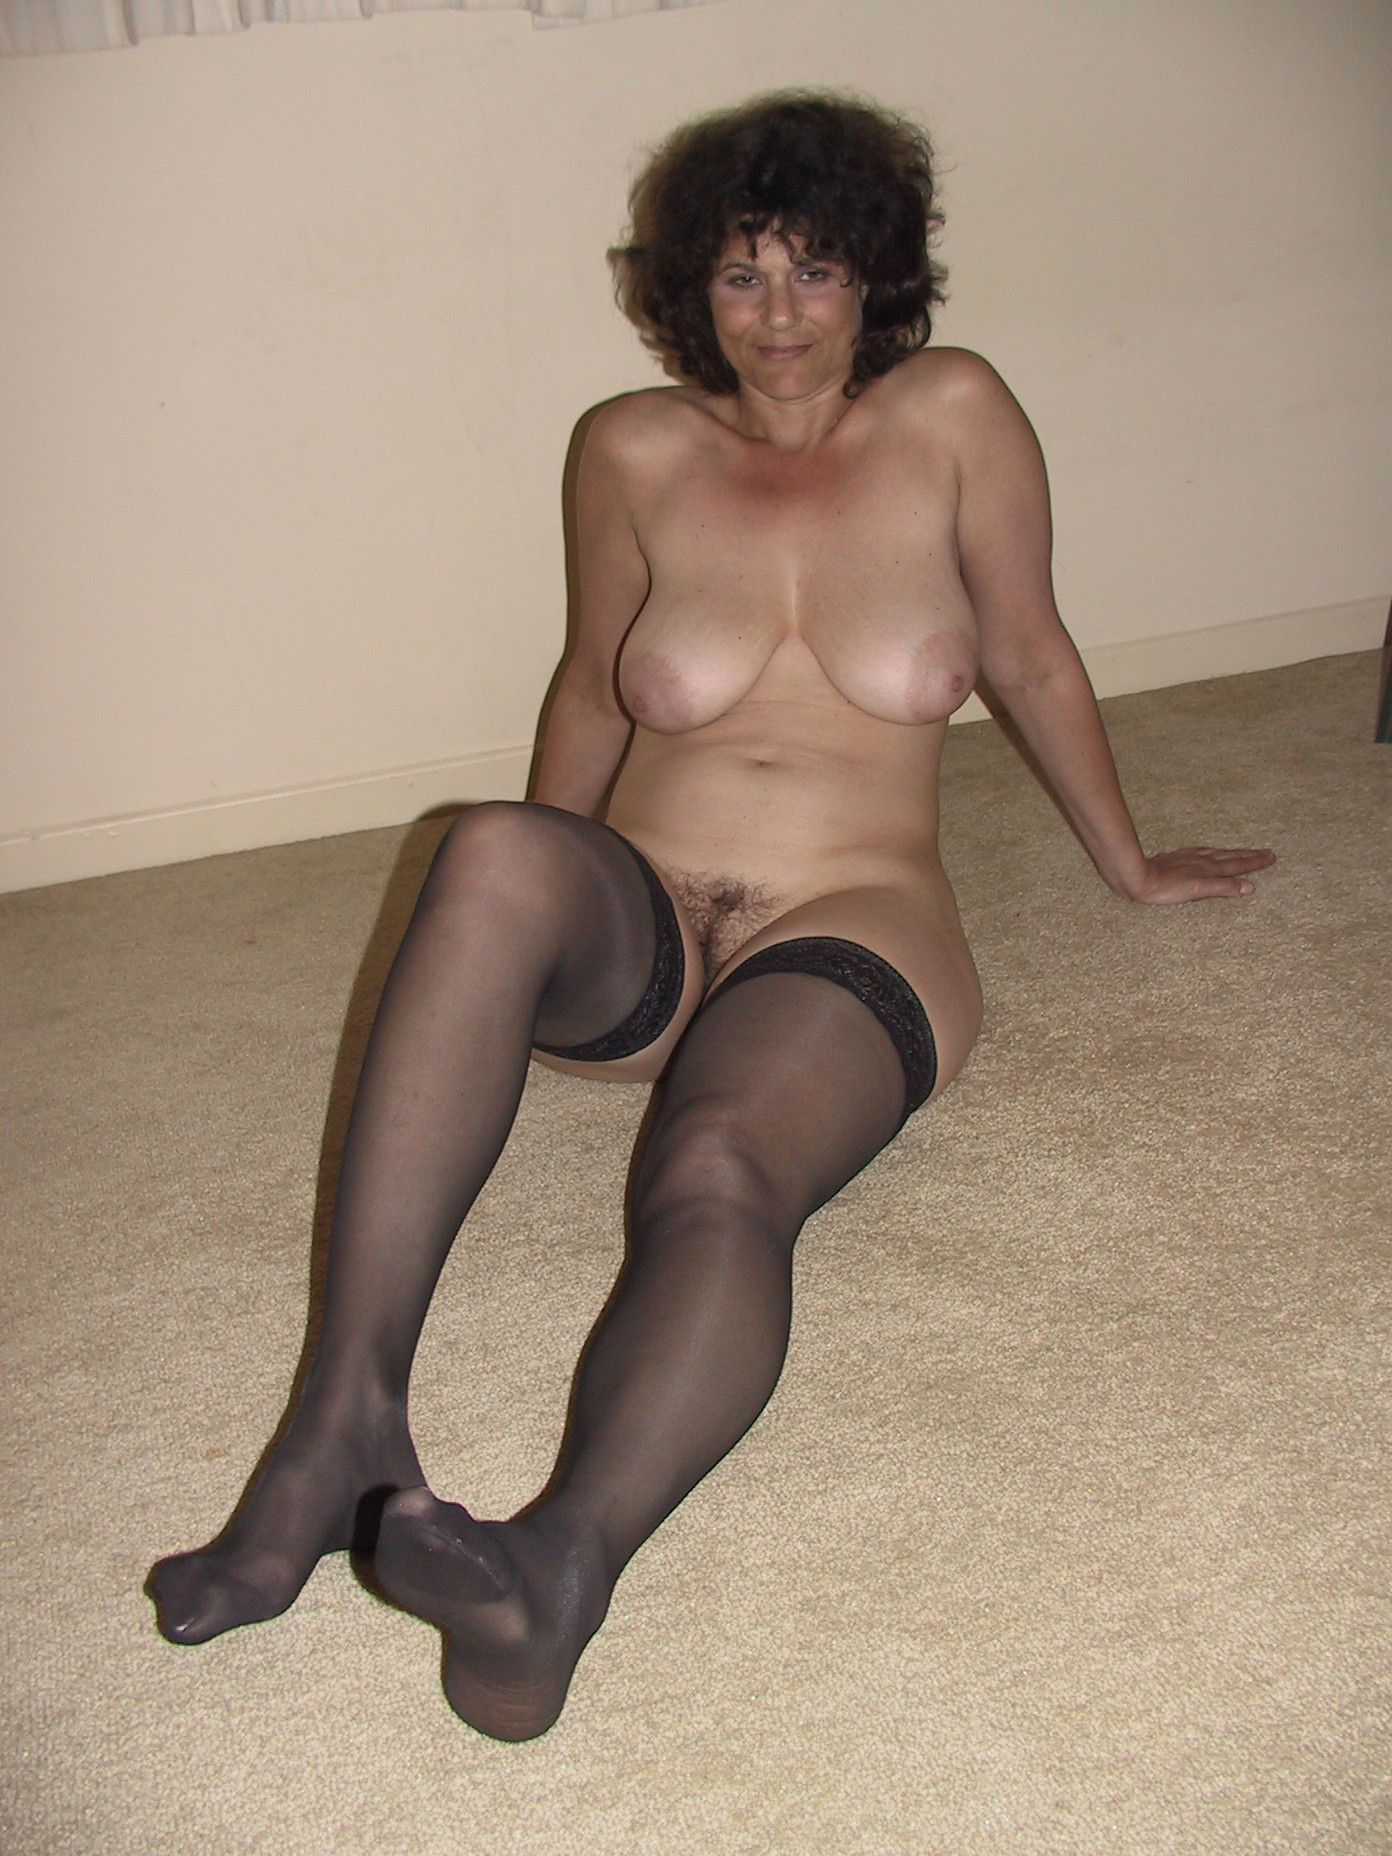 have quickly thought femdom free pix idea)))) The authoritative point